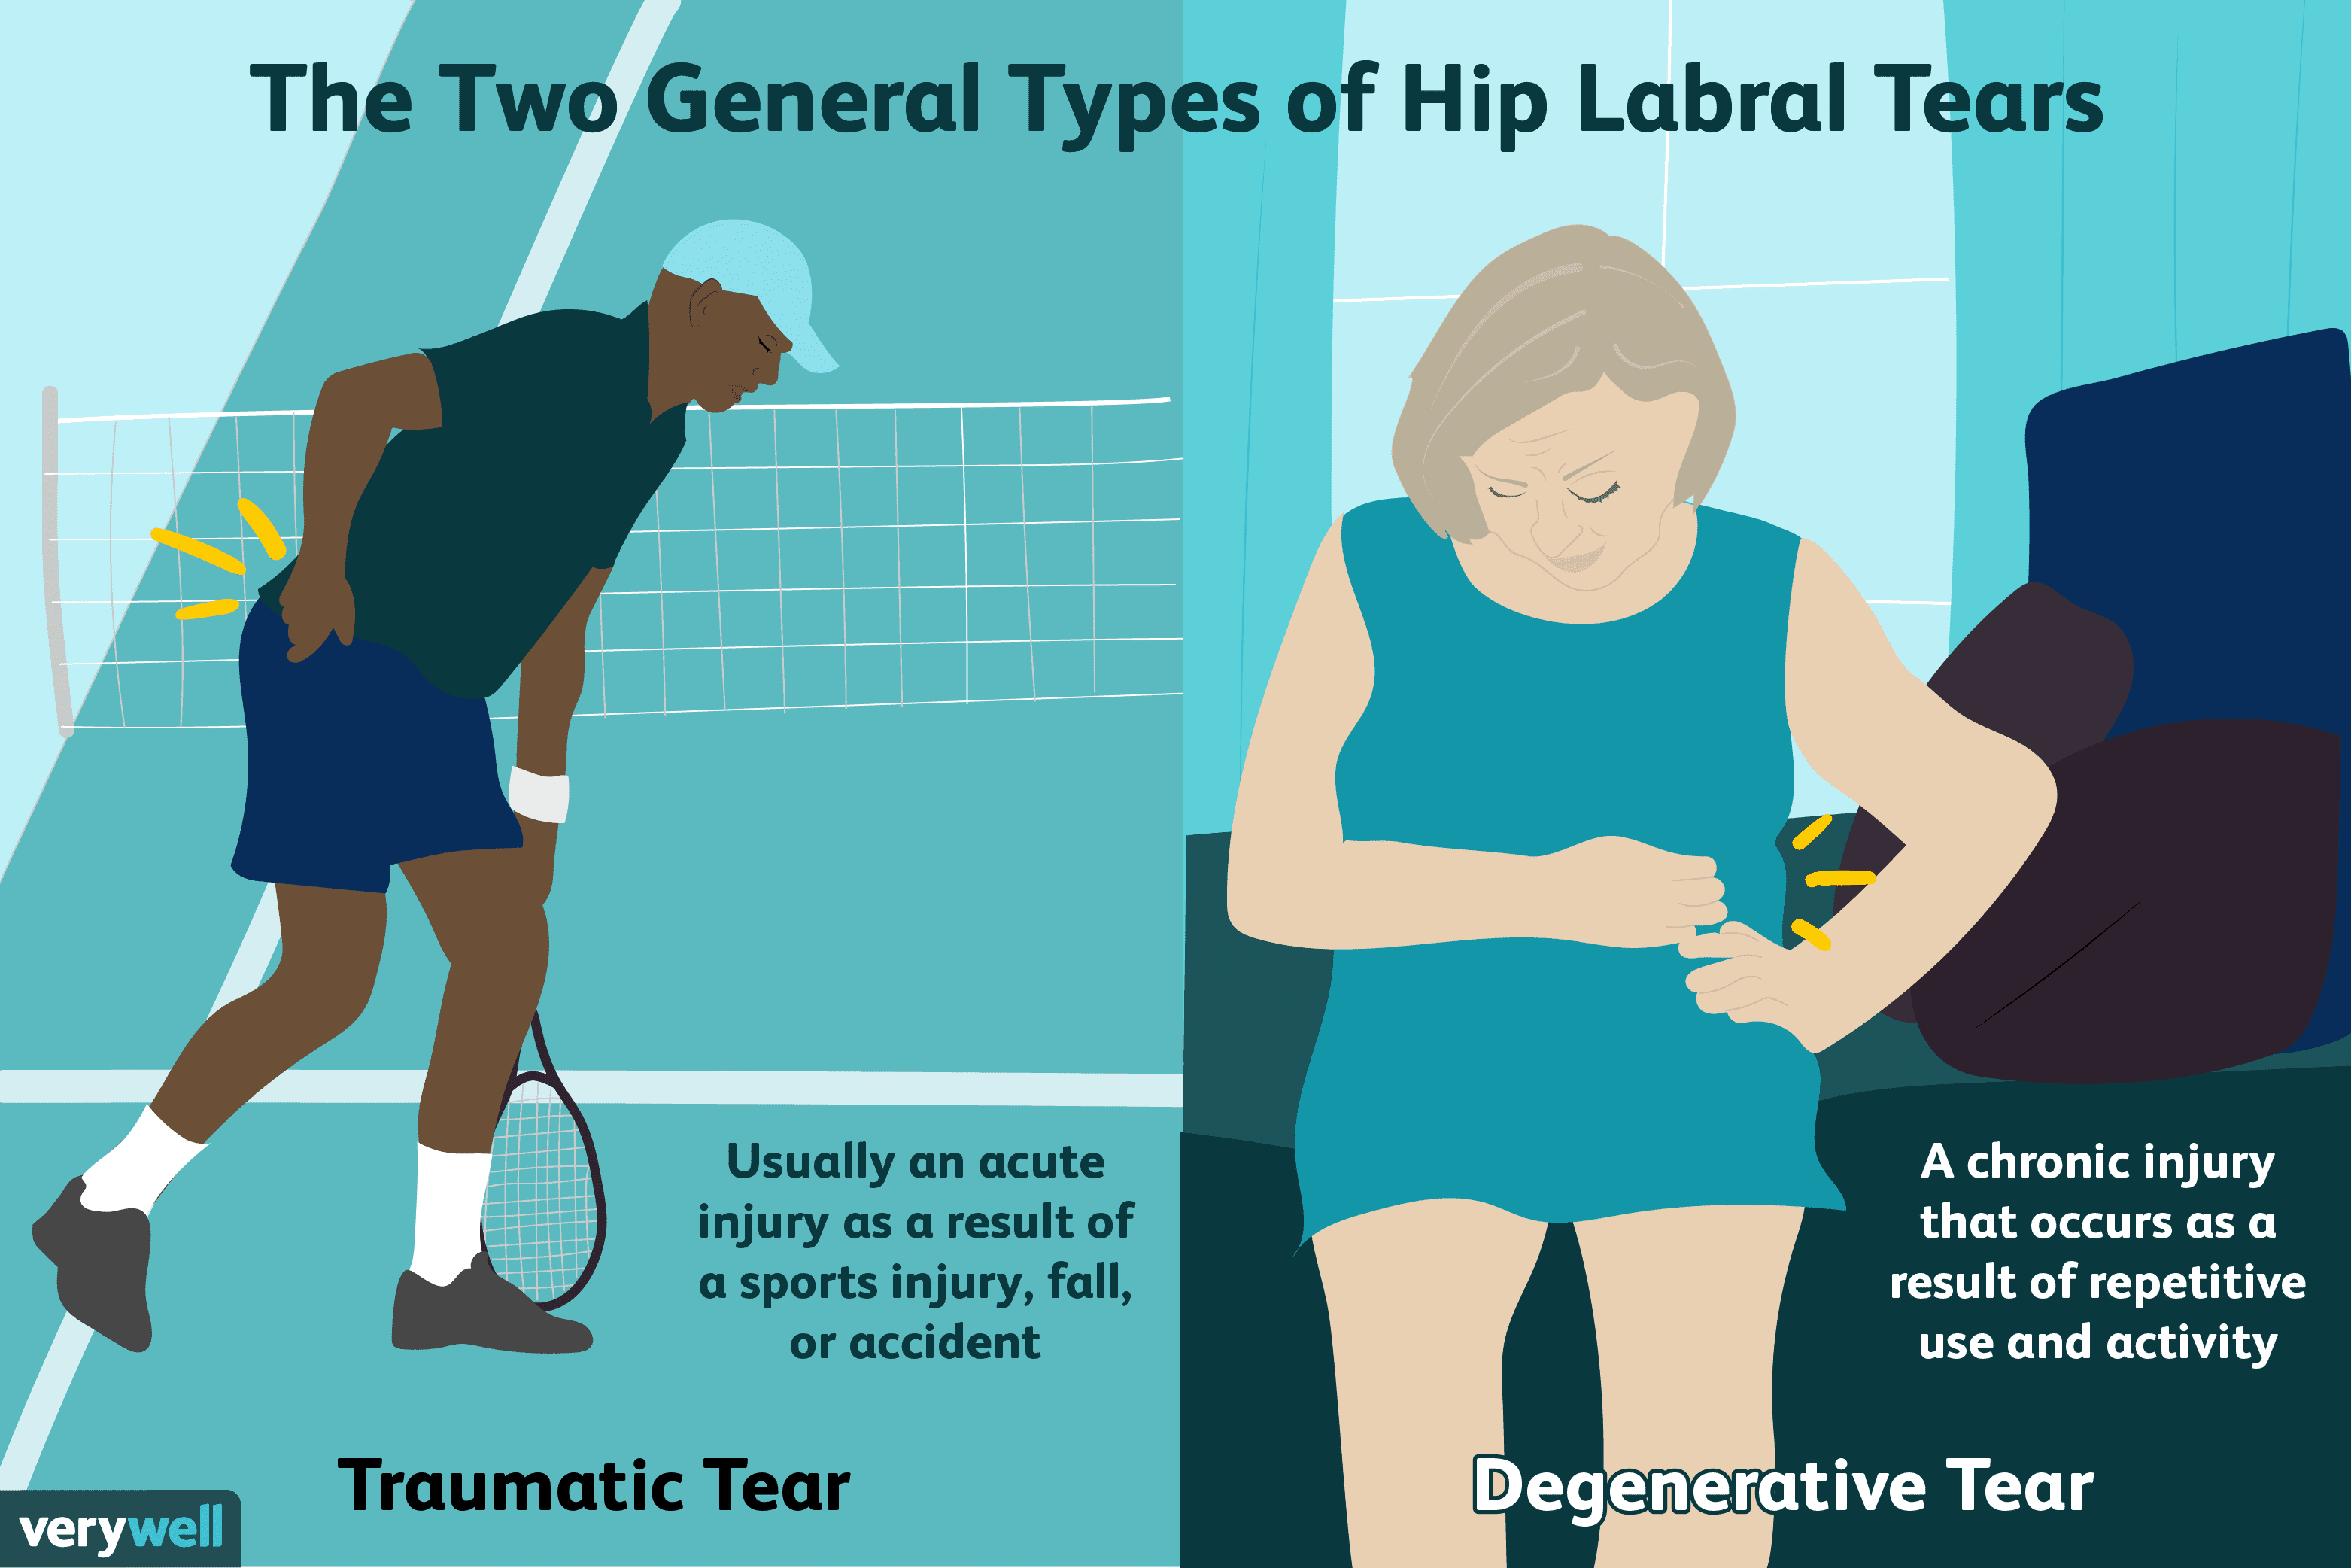 The Two General Types of Hip Labral Tears